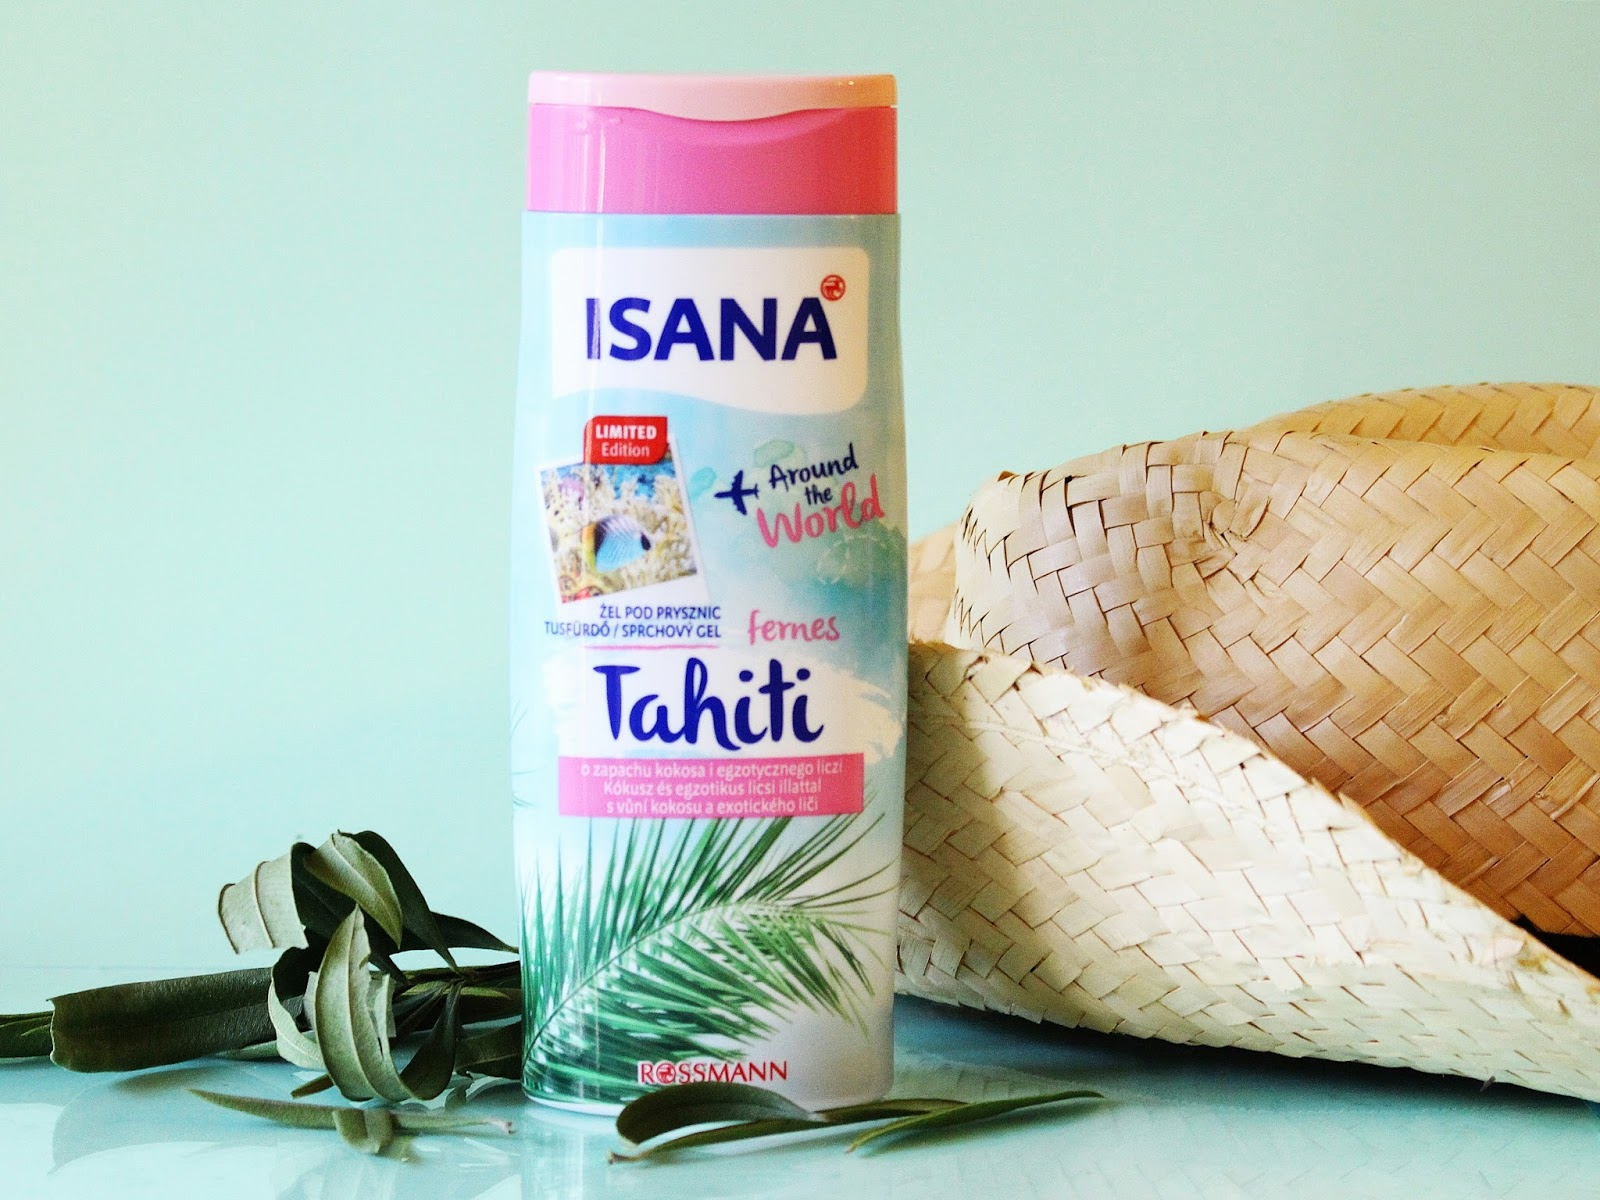 Isana Around The World - Tahiti